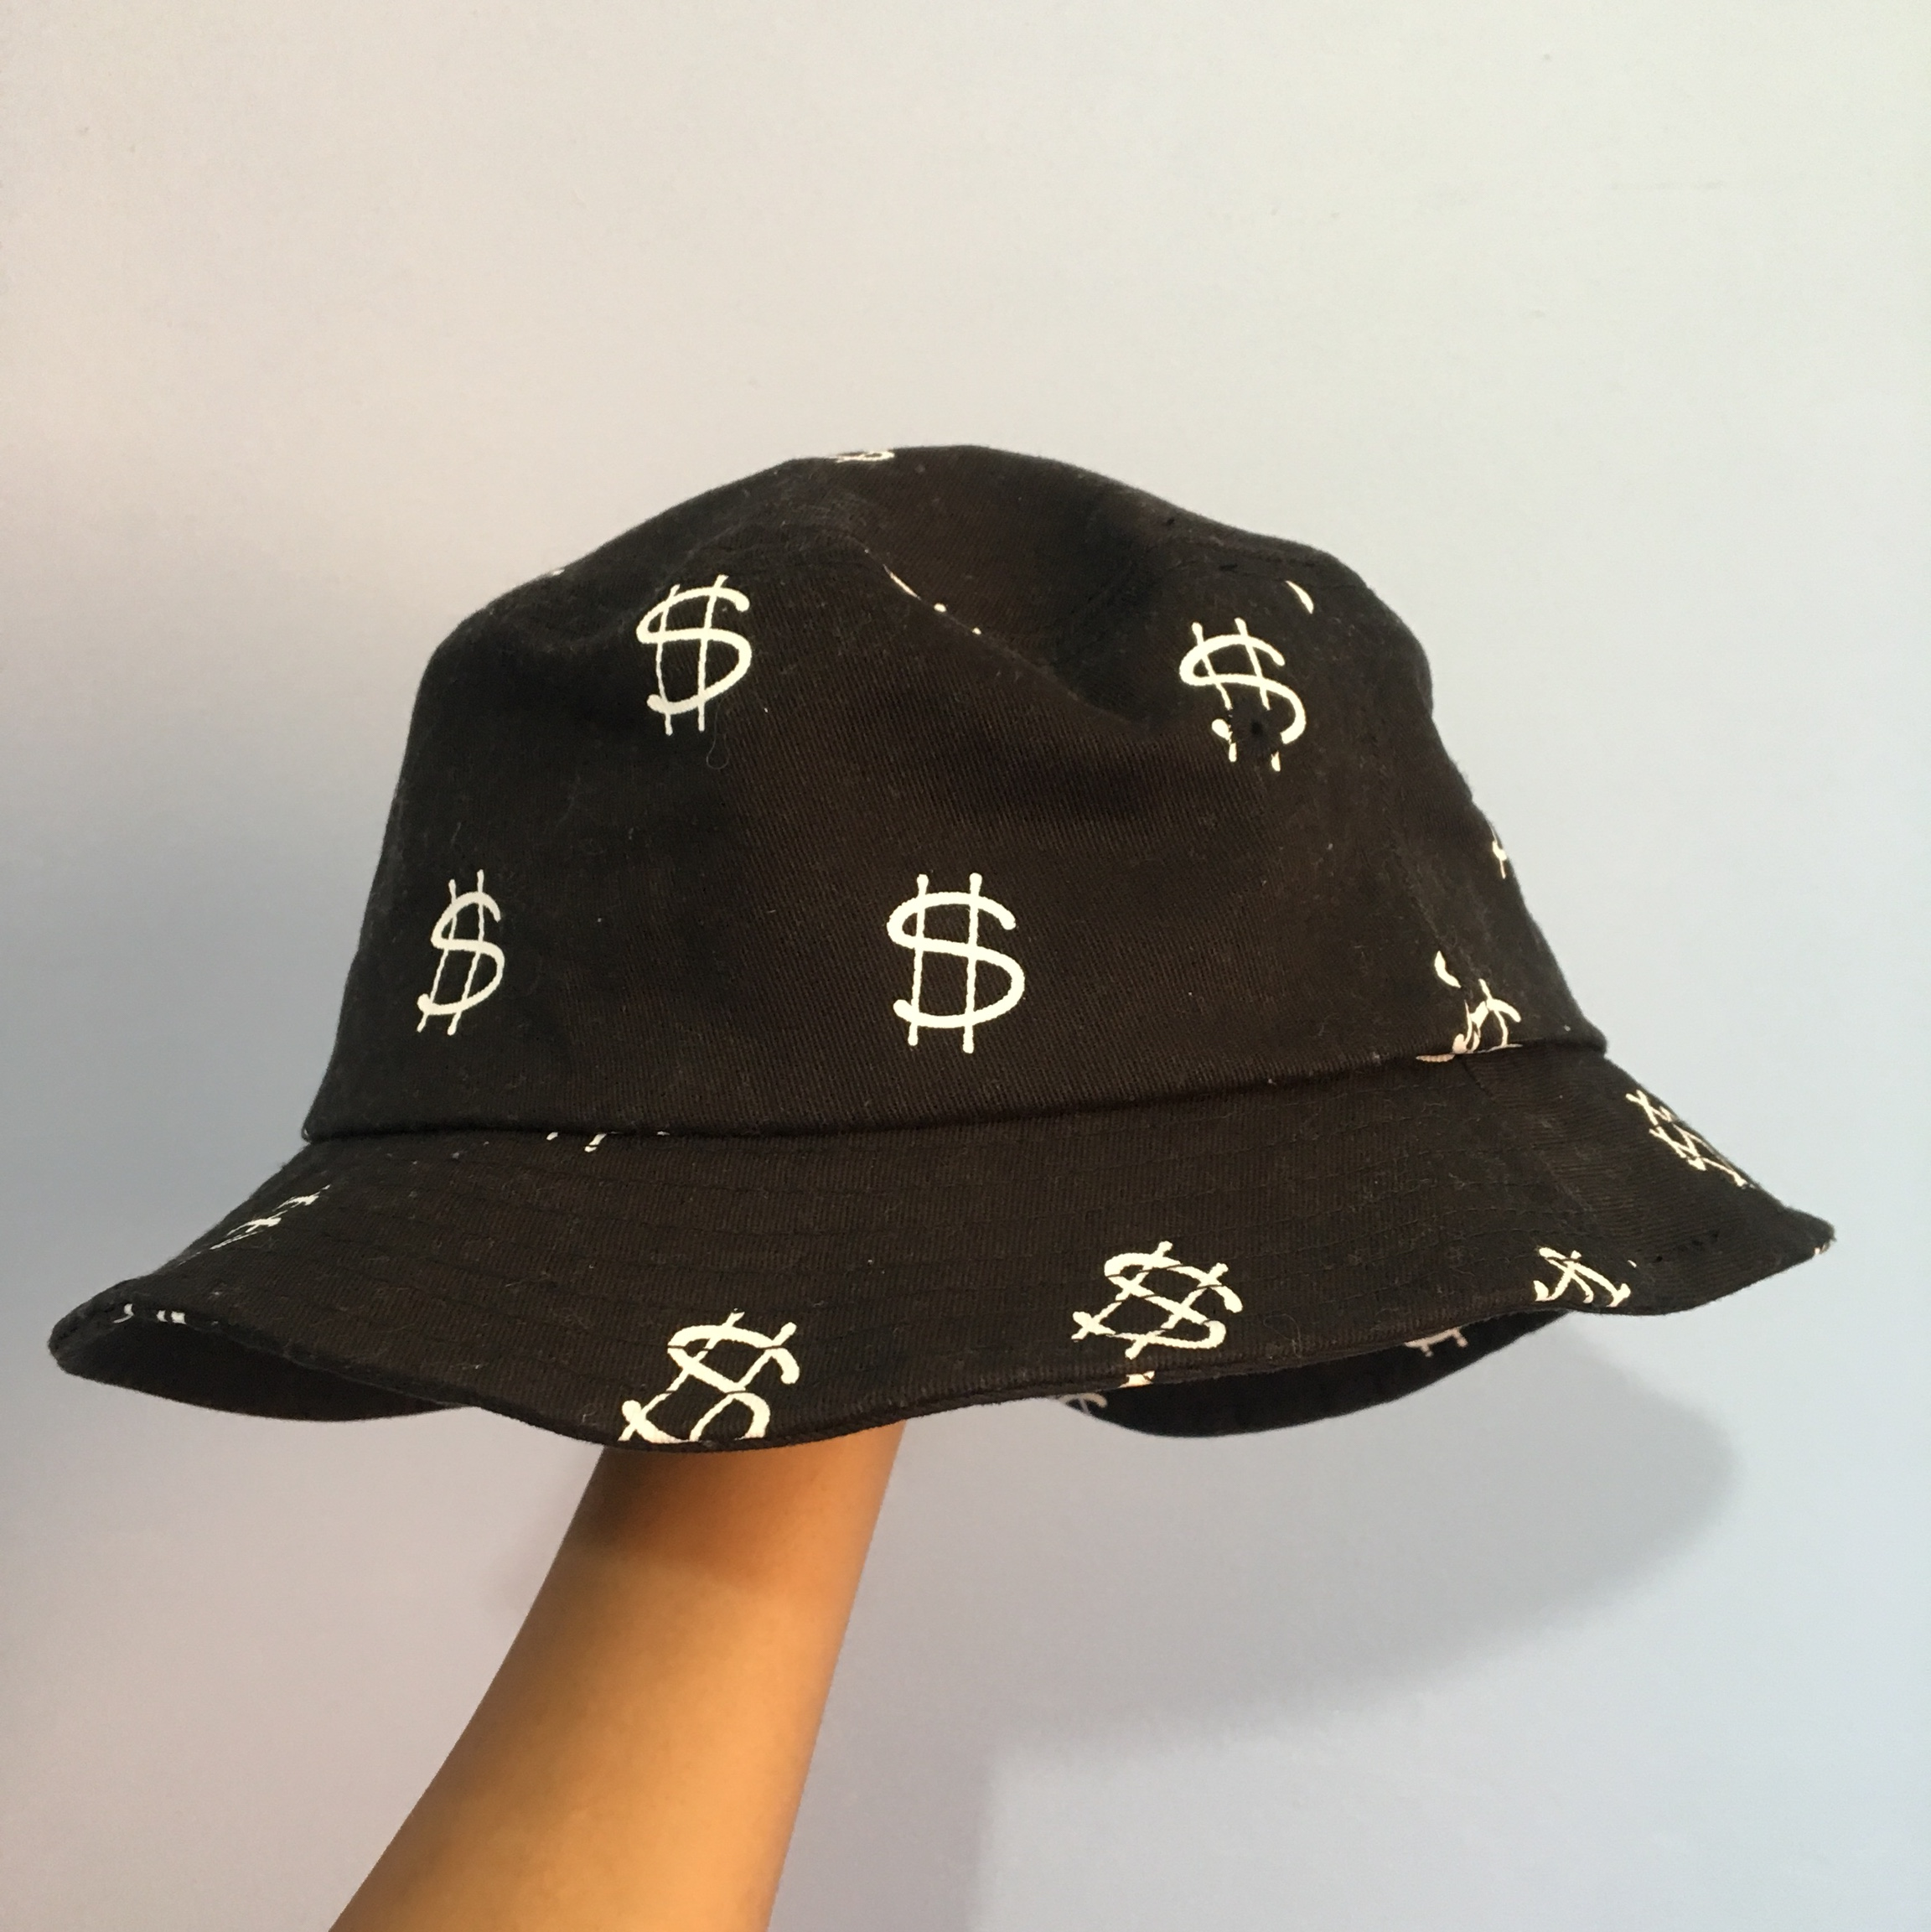 88ee19c25 Stüssy Money Bucket Hat Worn RRP: £26 - Depop